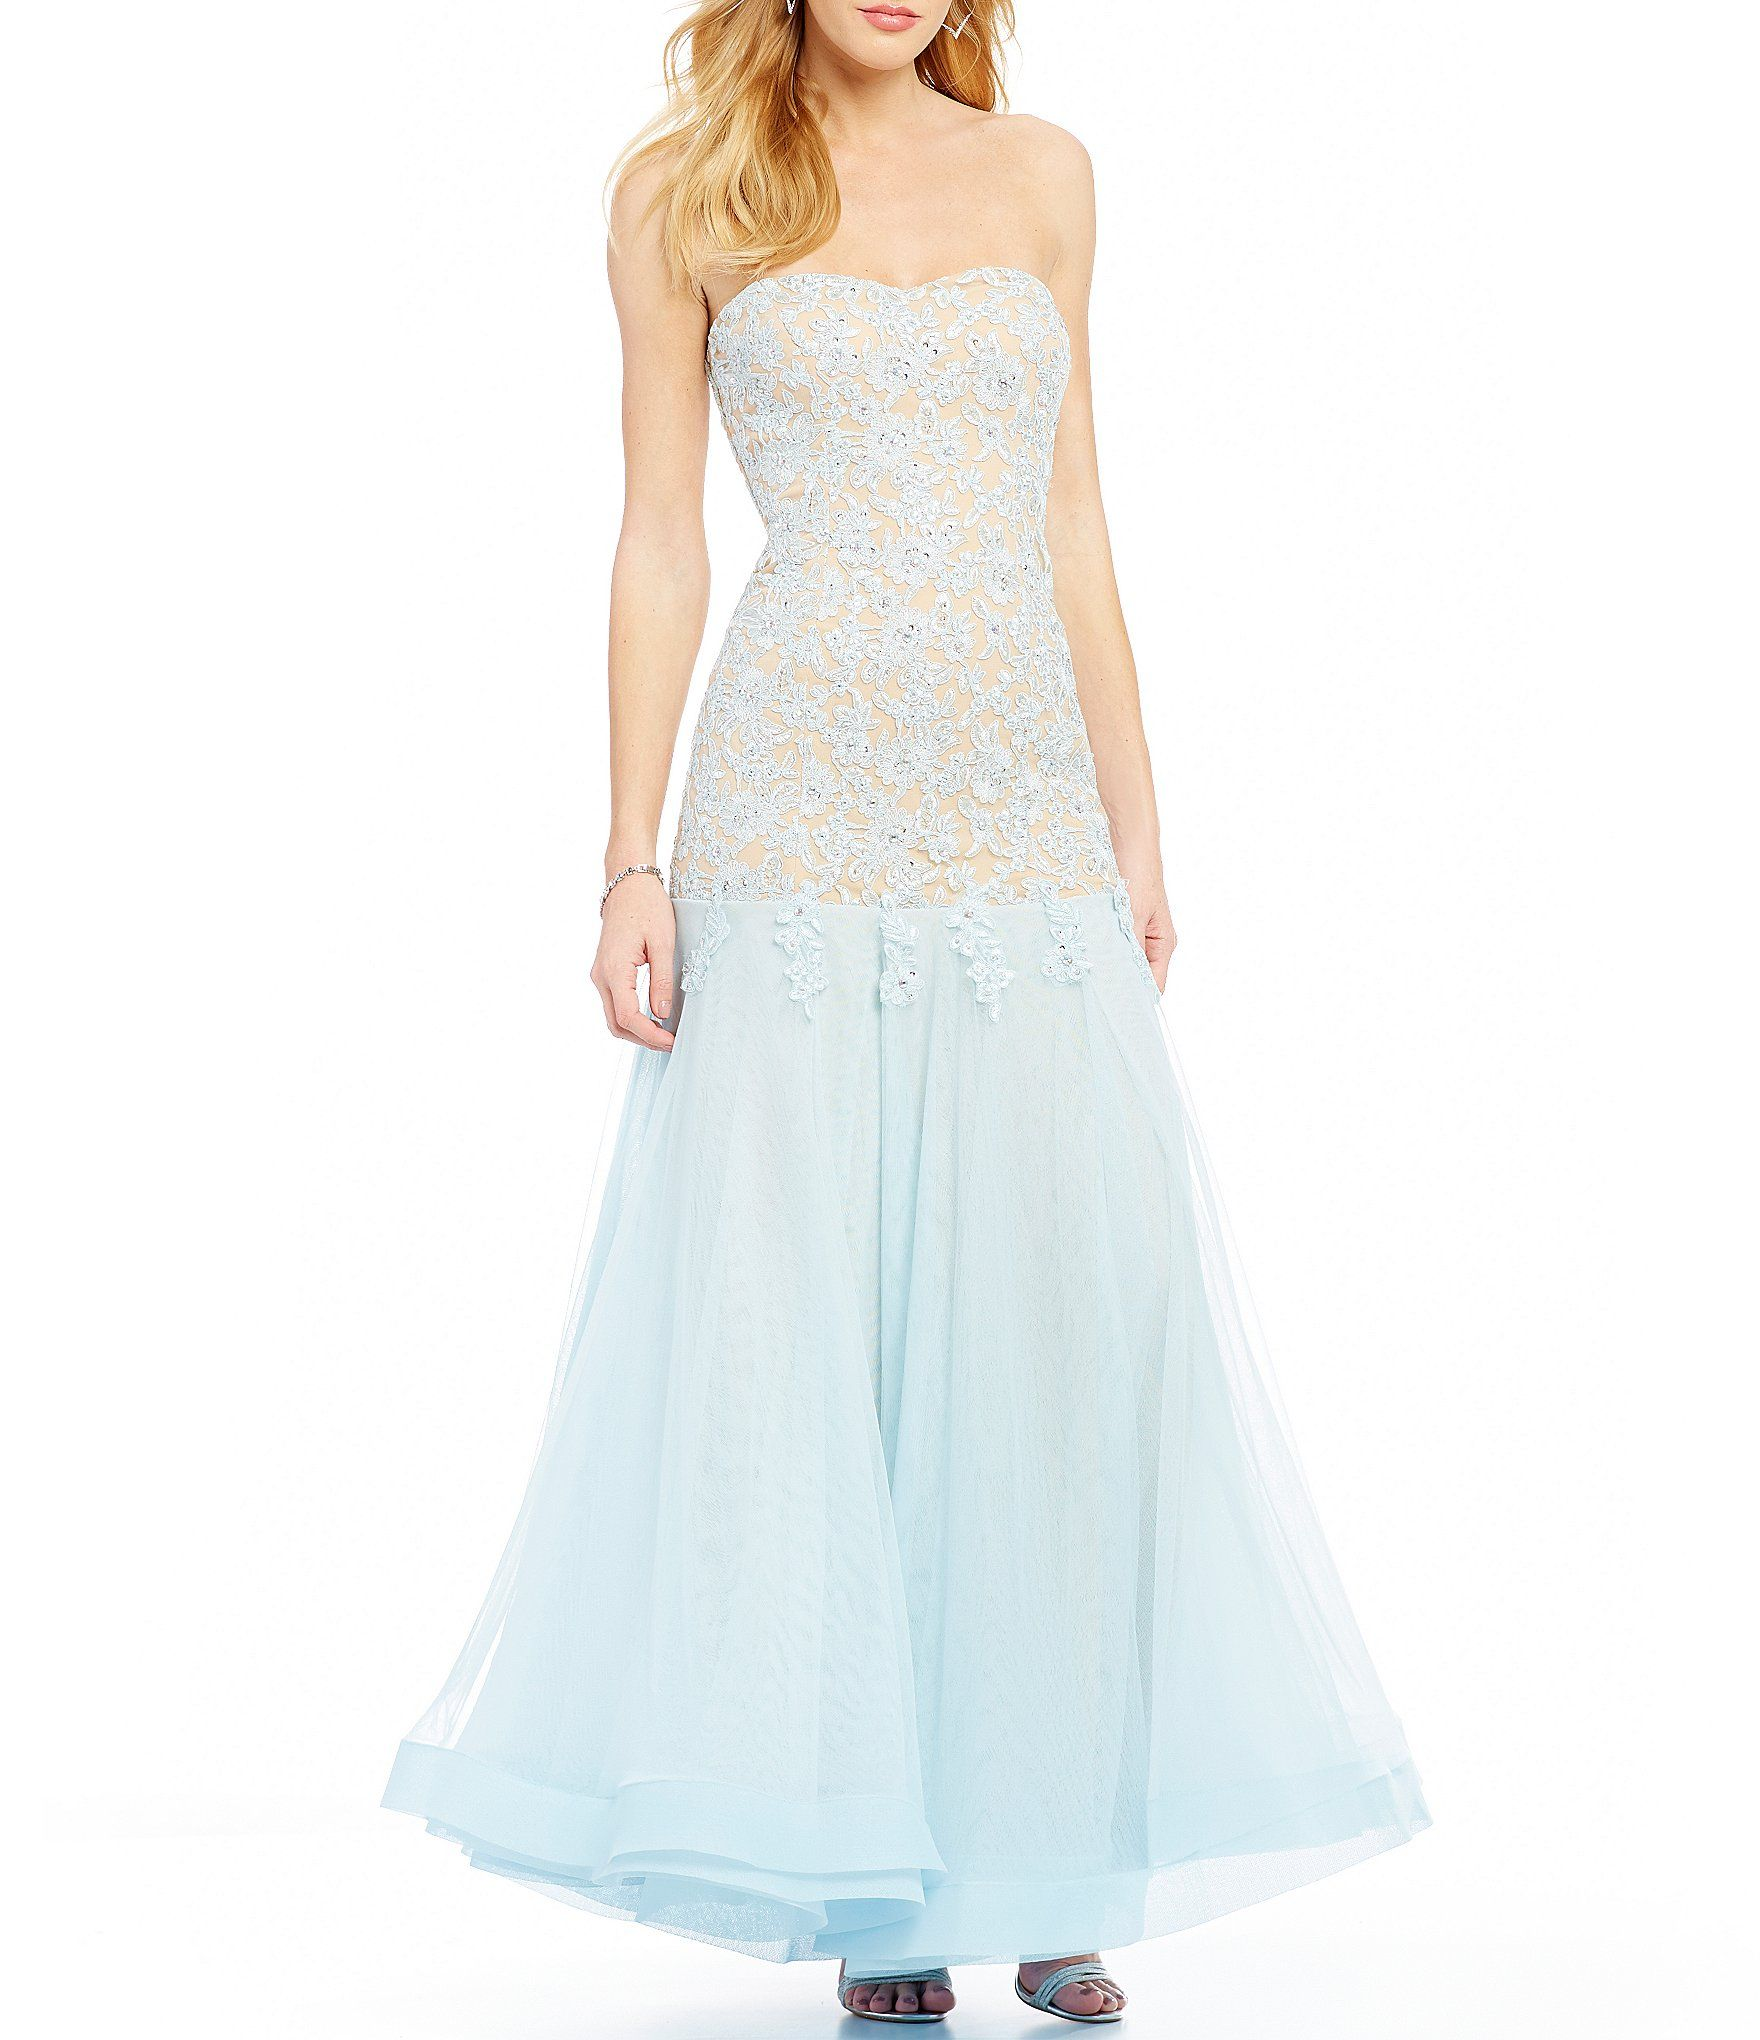 Jodi kristopher strapless applique long mermaid dress dillards